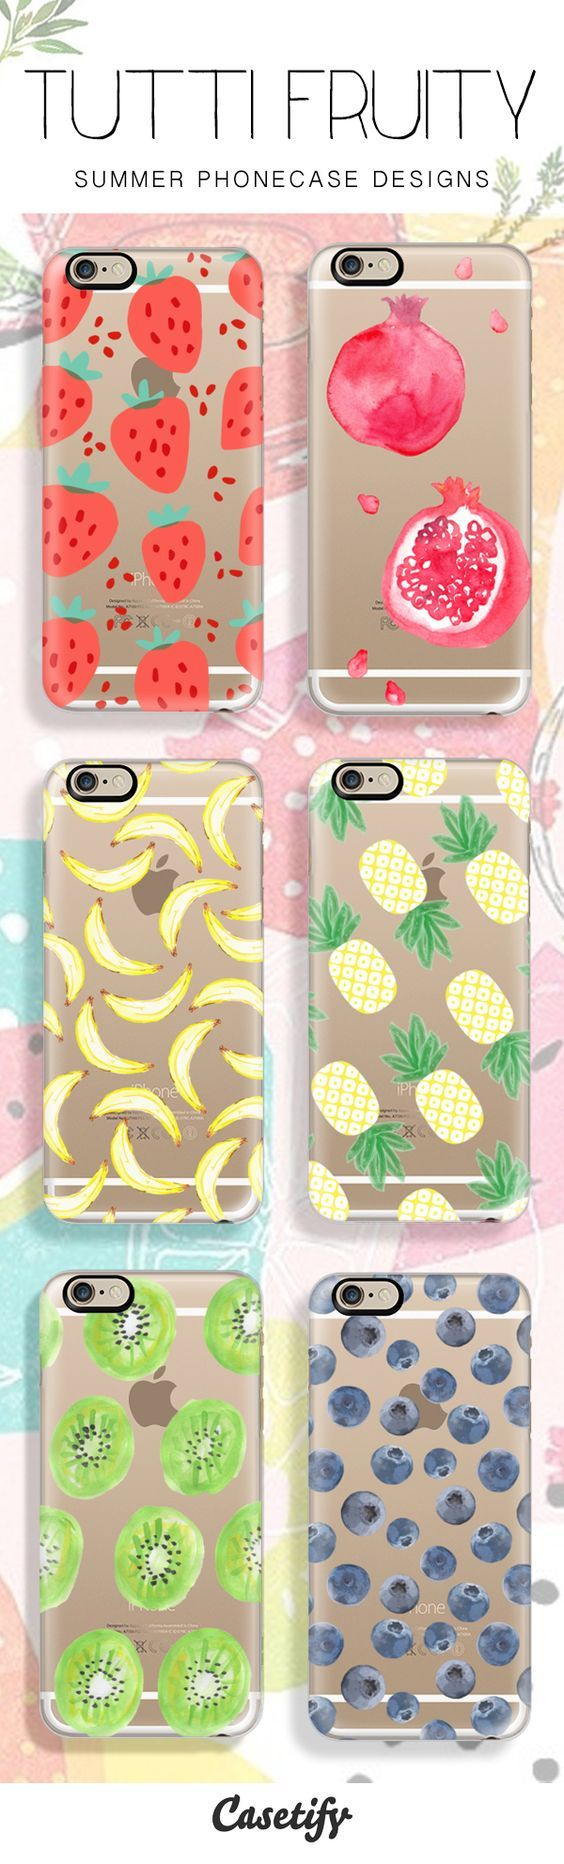 Flavourful Ways to Liven Up Your Summer - from sweet strawberries to juicy pineapples - we have it all. Shop our Tutti Fruity Summer Phonecase Designs here: http://www.casetify.com/artworks/Get8n2KEIm: